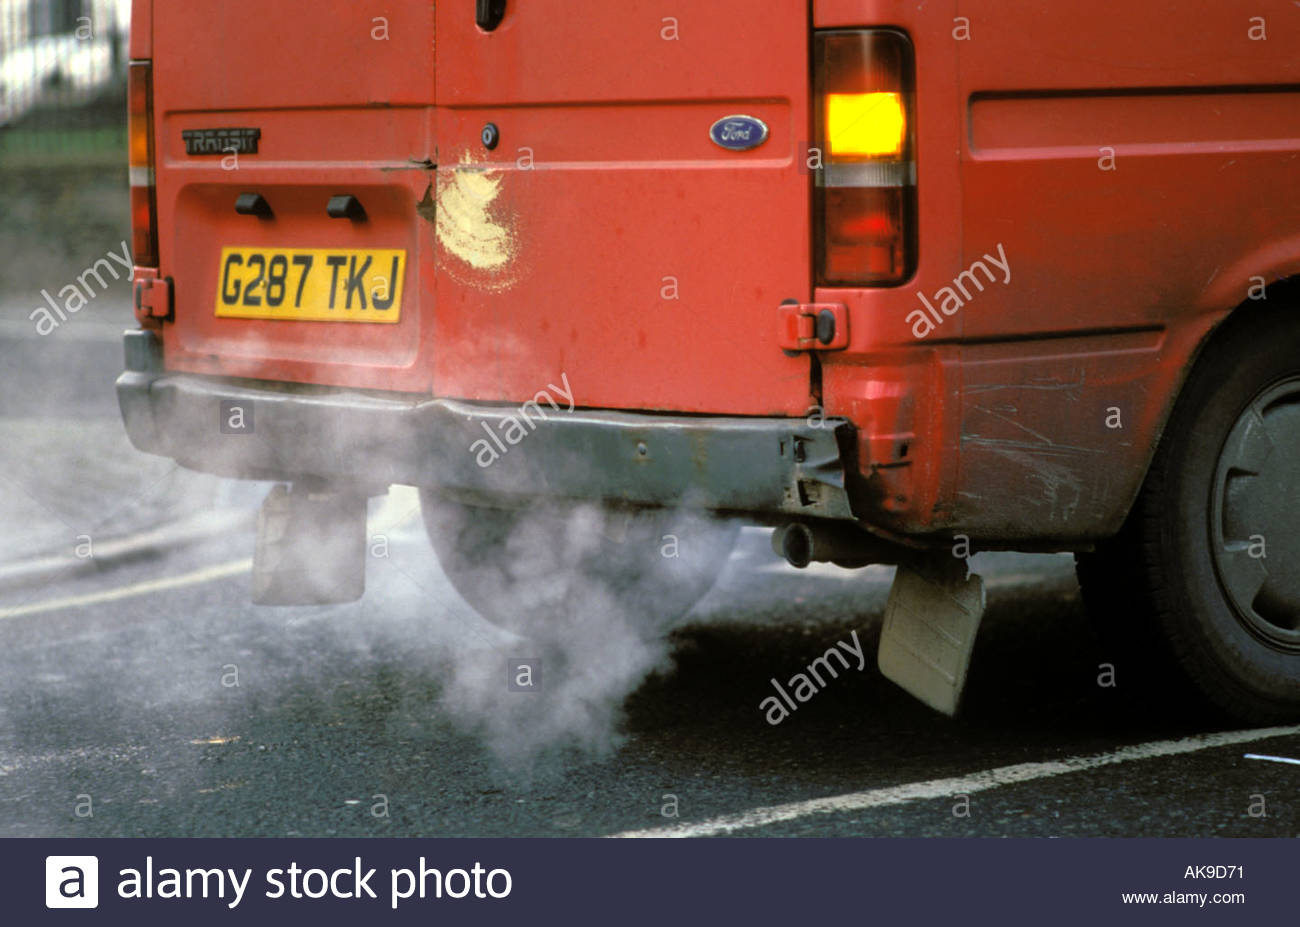 Exhaust Coming Out Of A Car ~ Diesel exhaust fumes coming out of back van uk stock